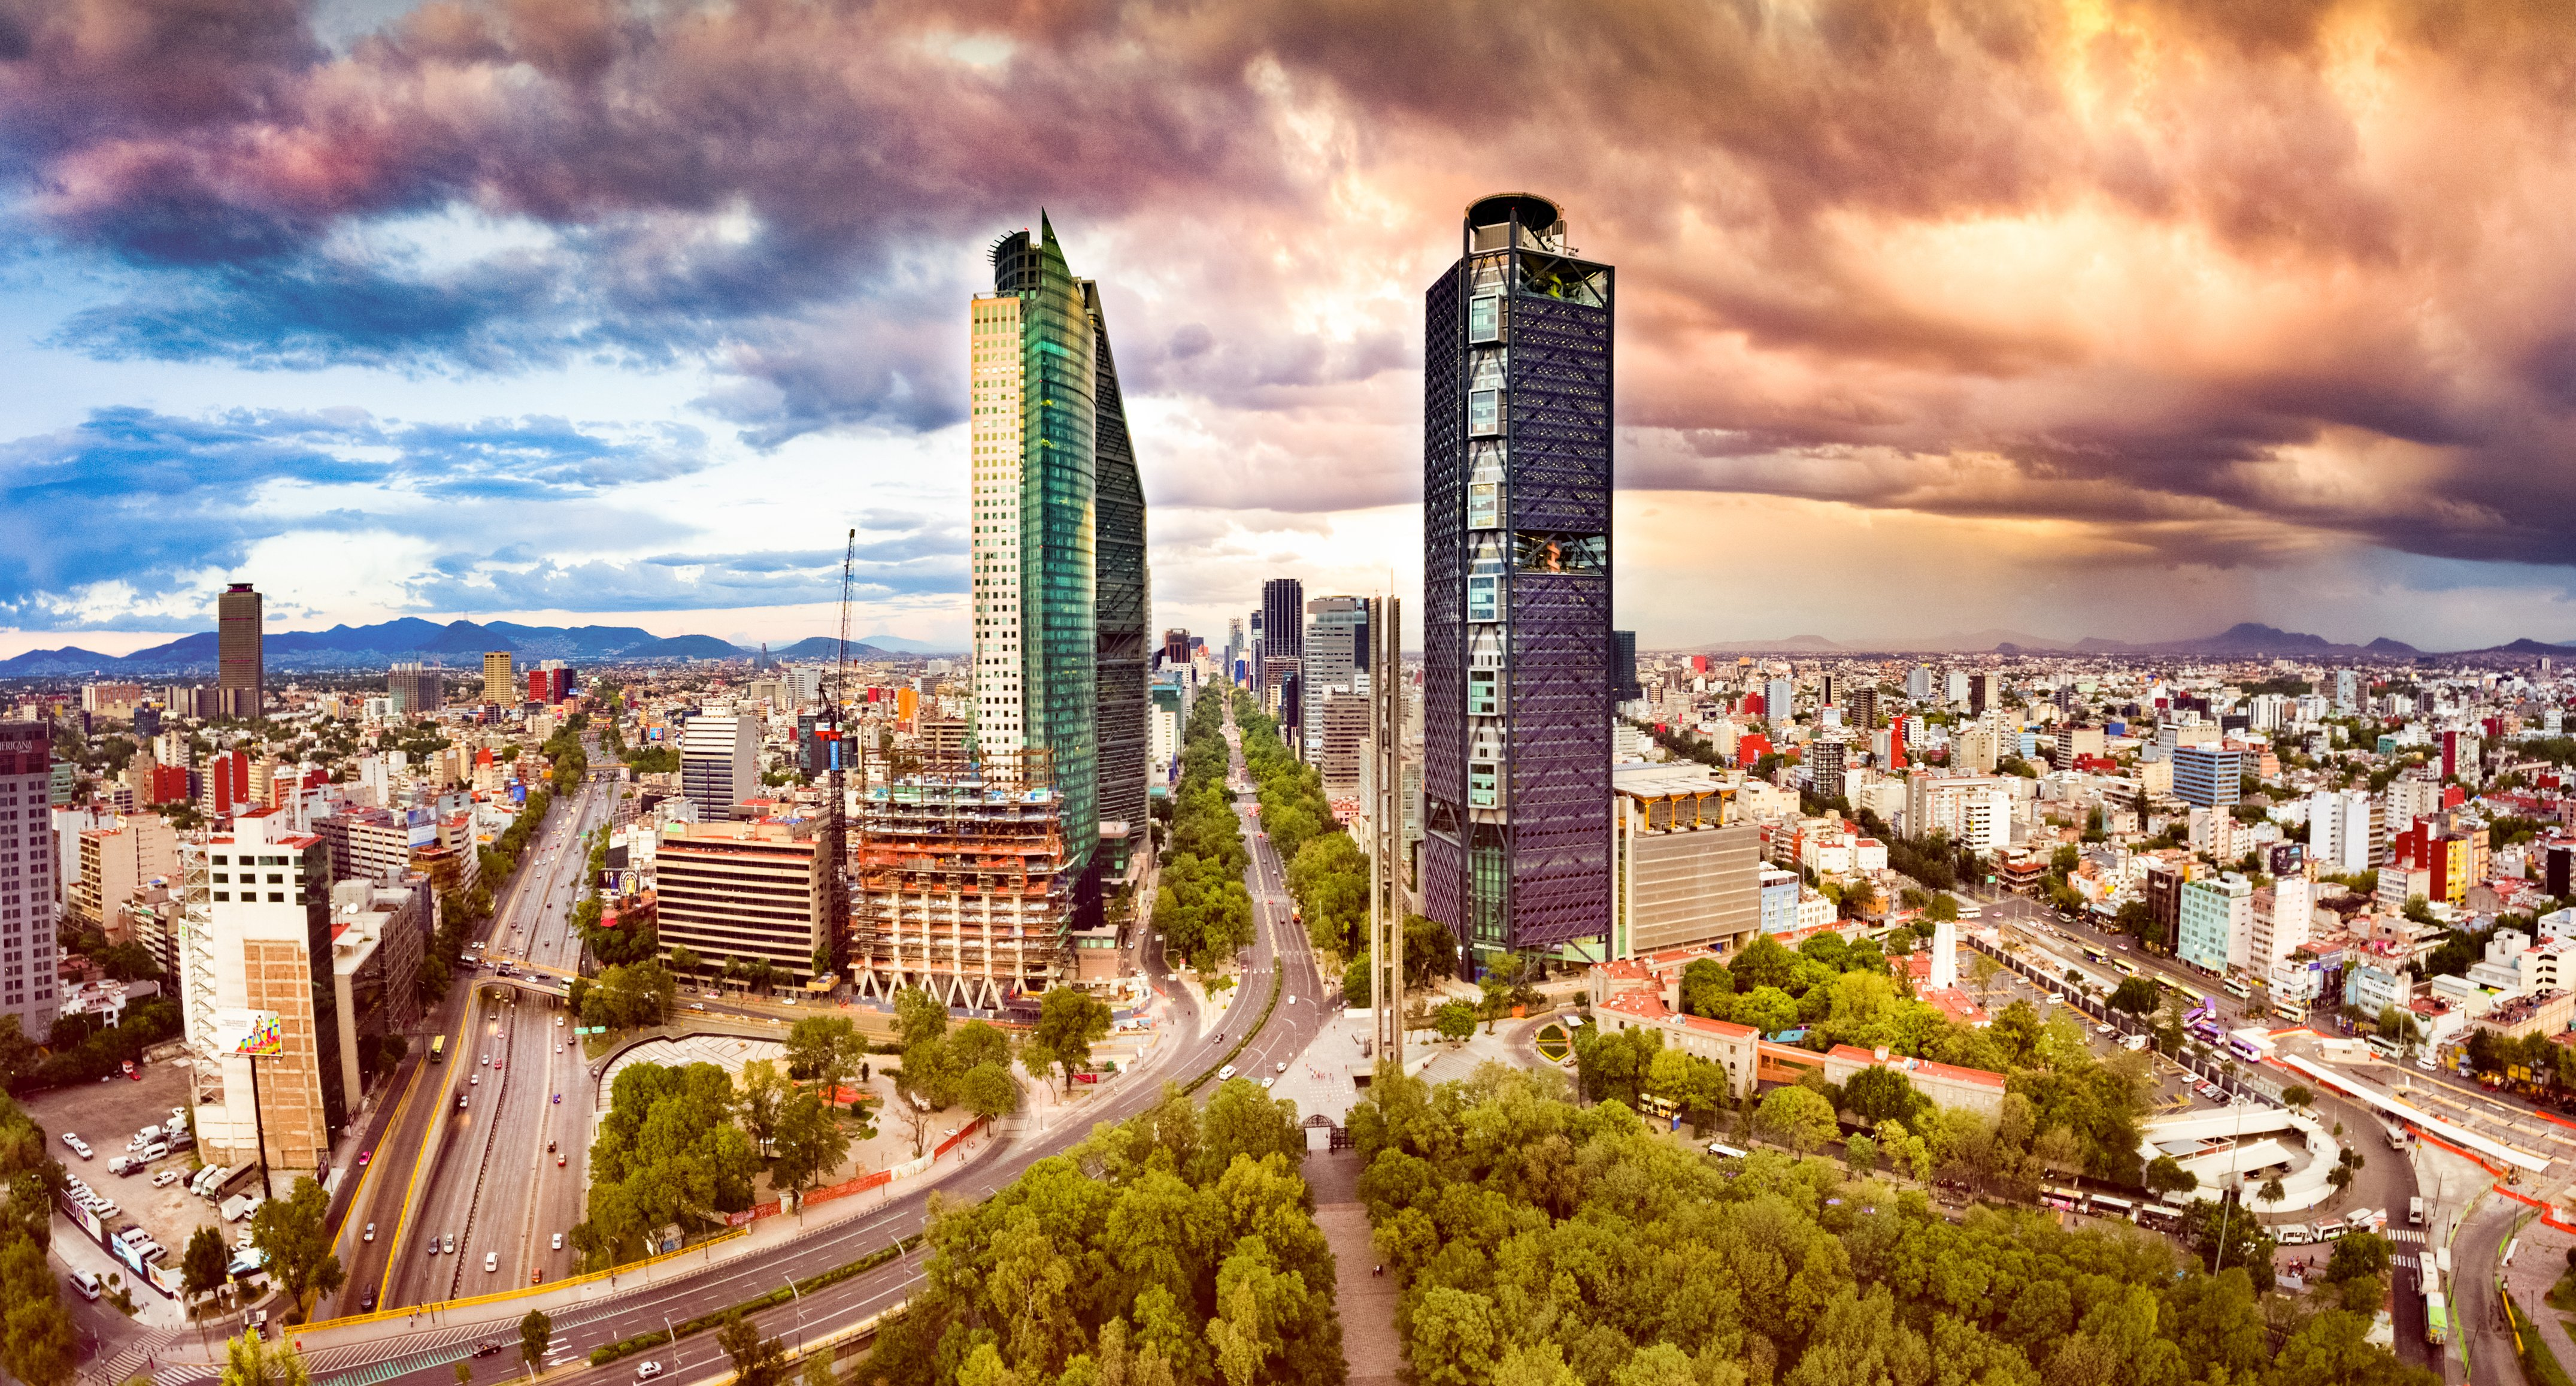 Mexico City Startup Resource List 500 Accelerators Investors And More